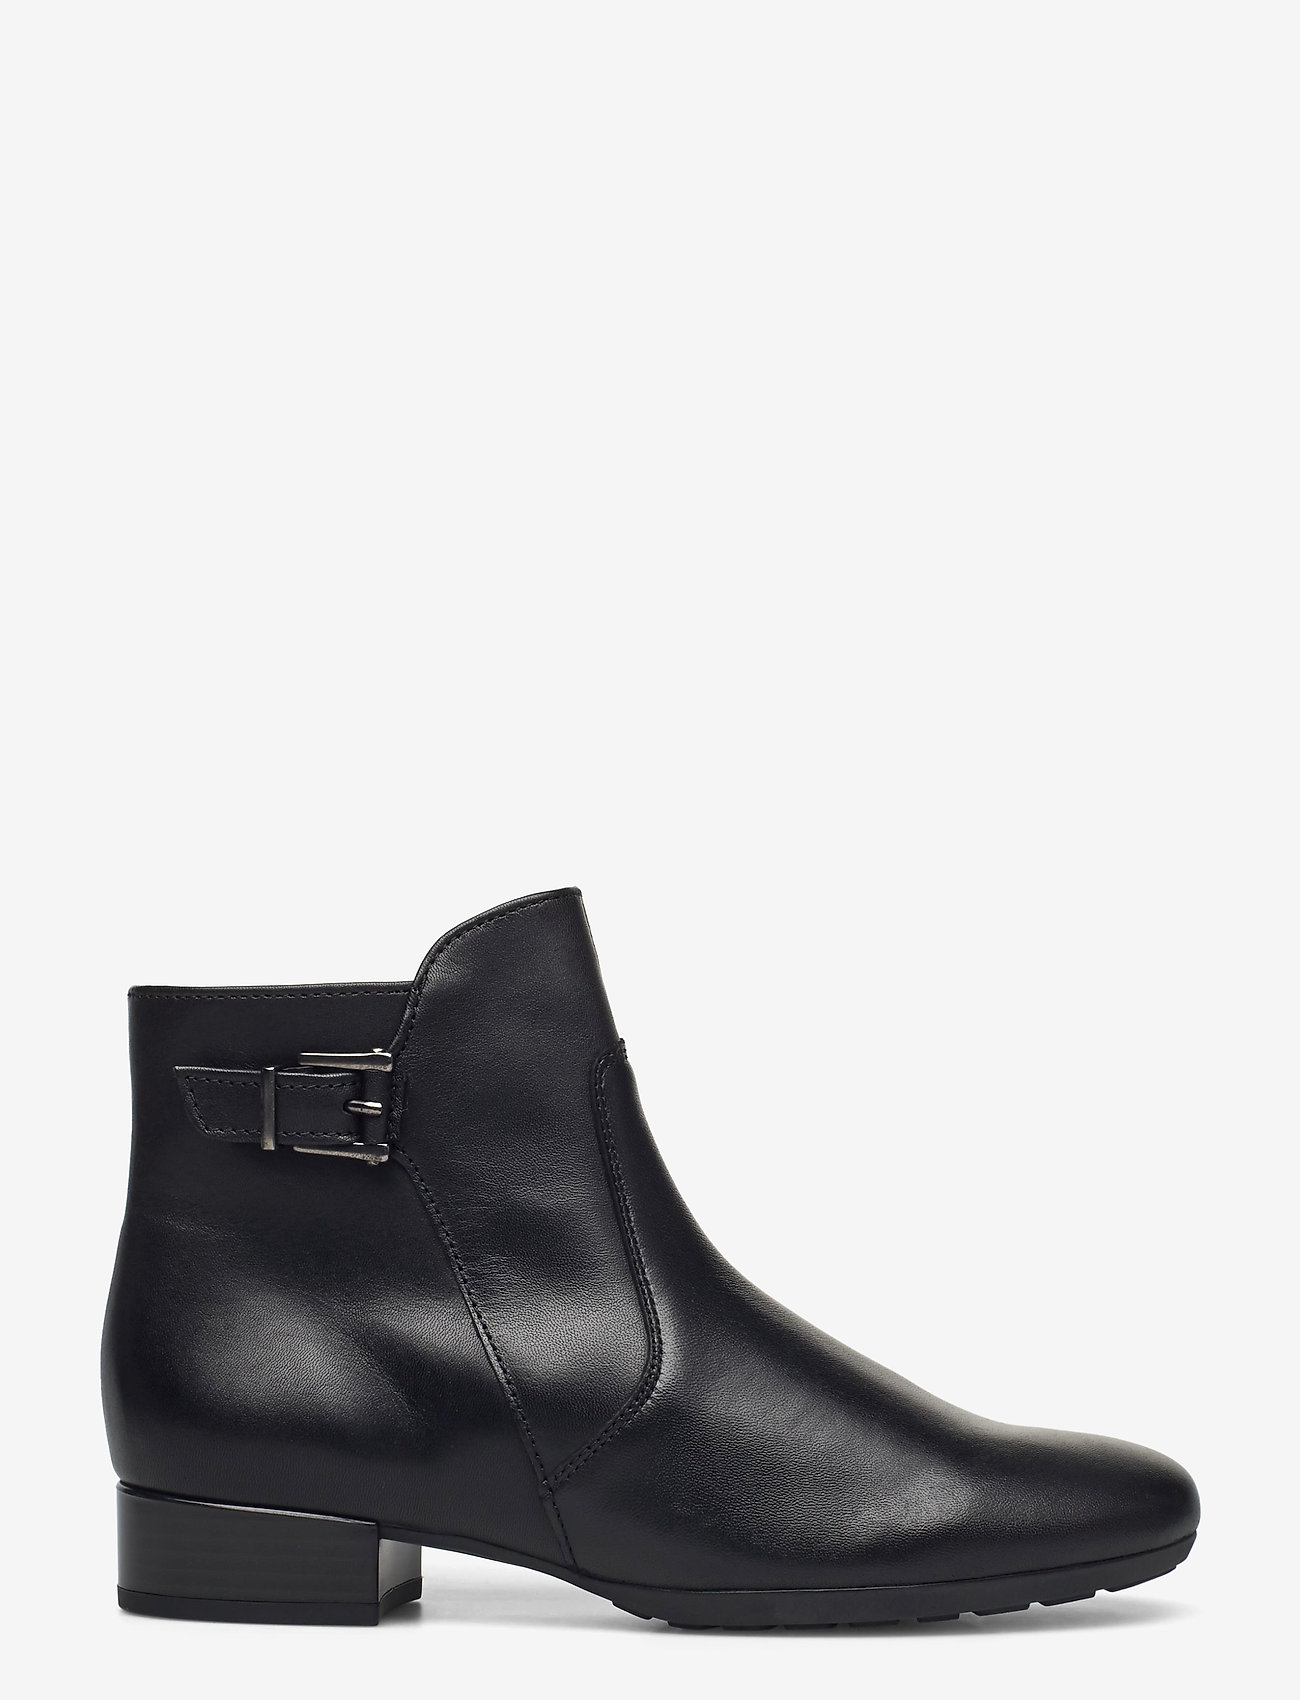 Gabor - Ankle boot - chelsea boots - black - 1